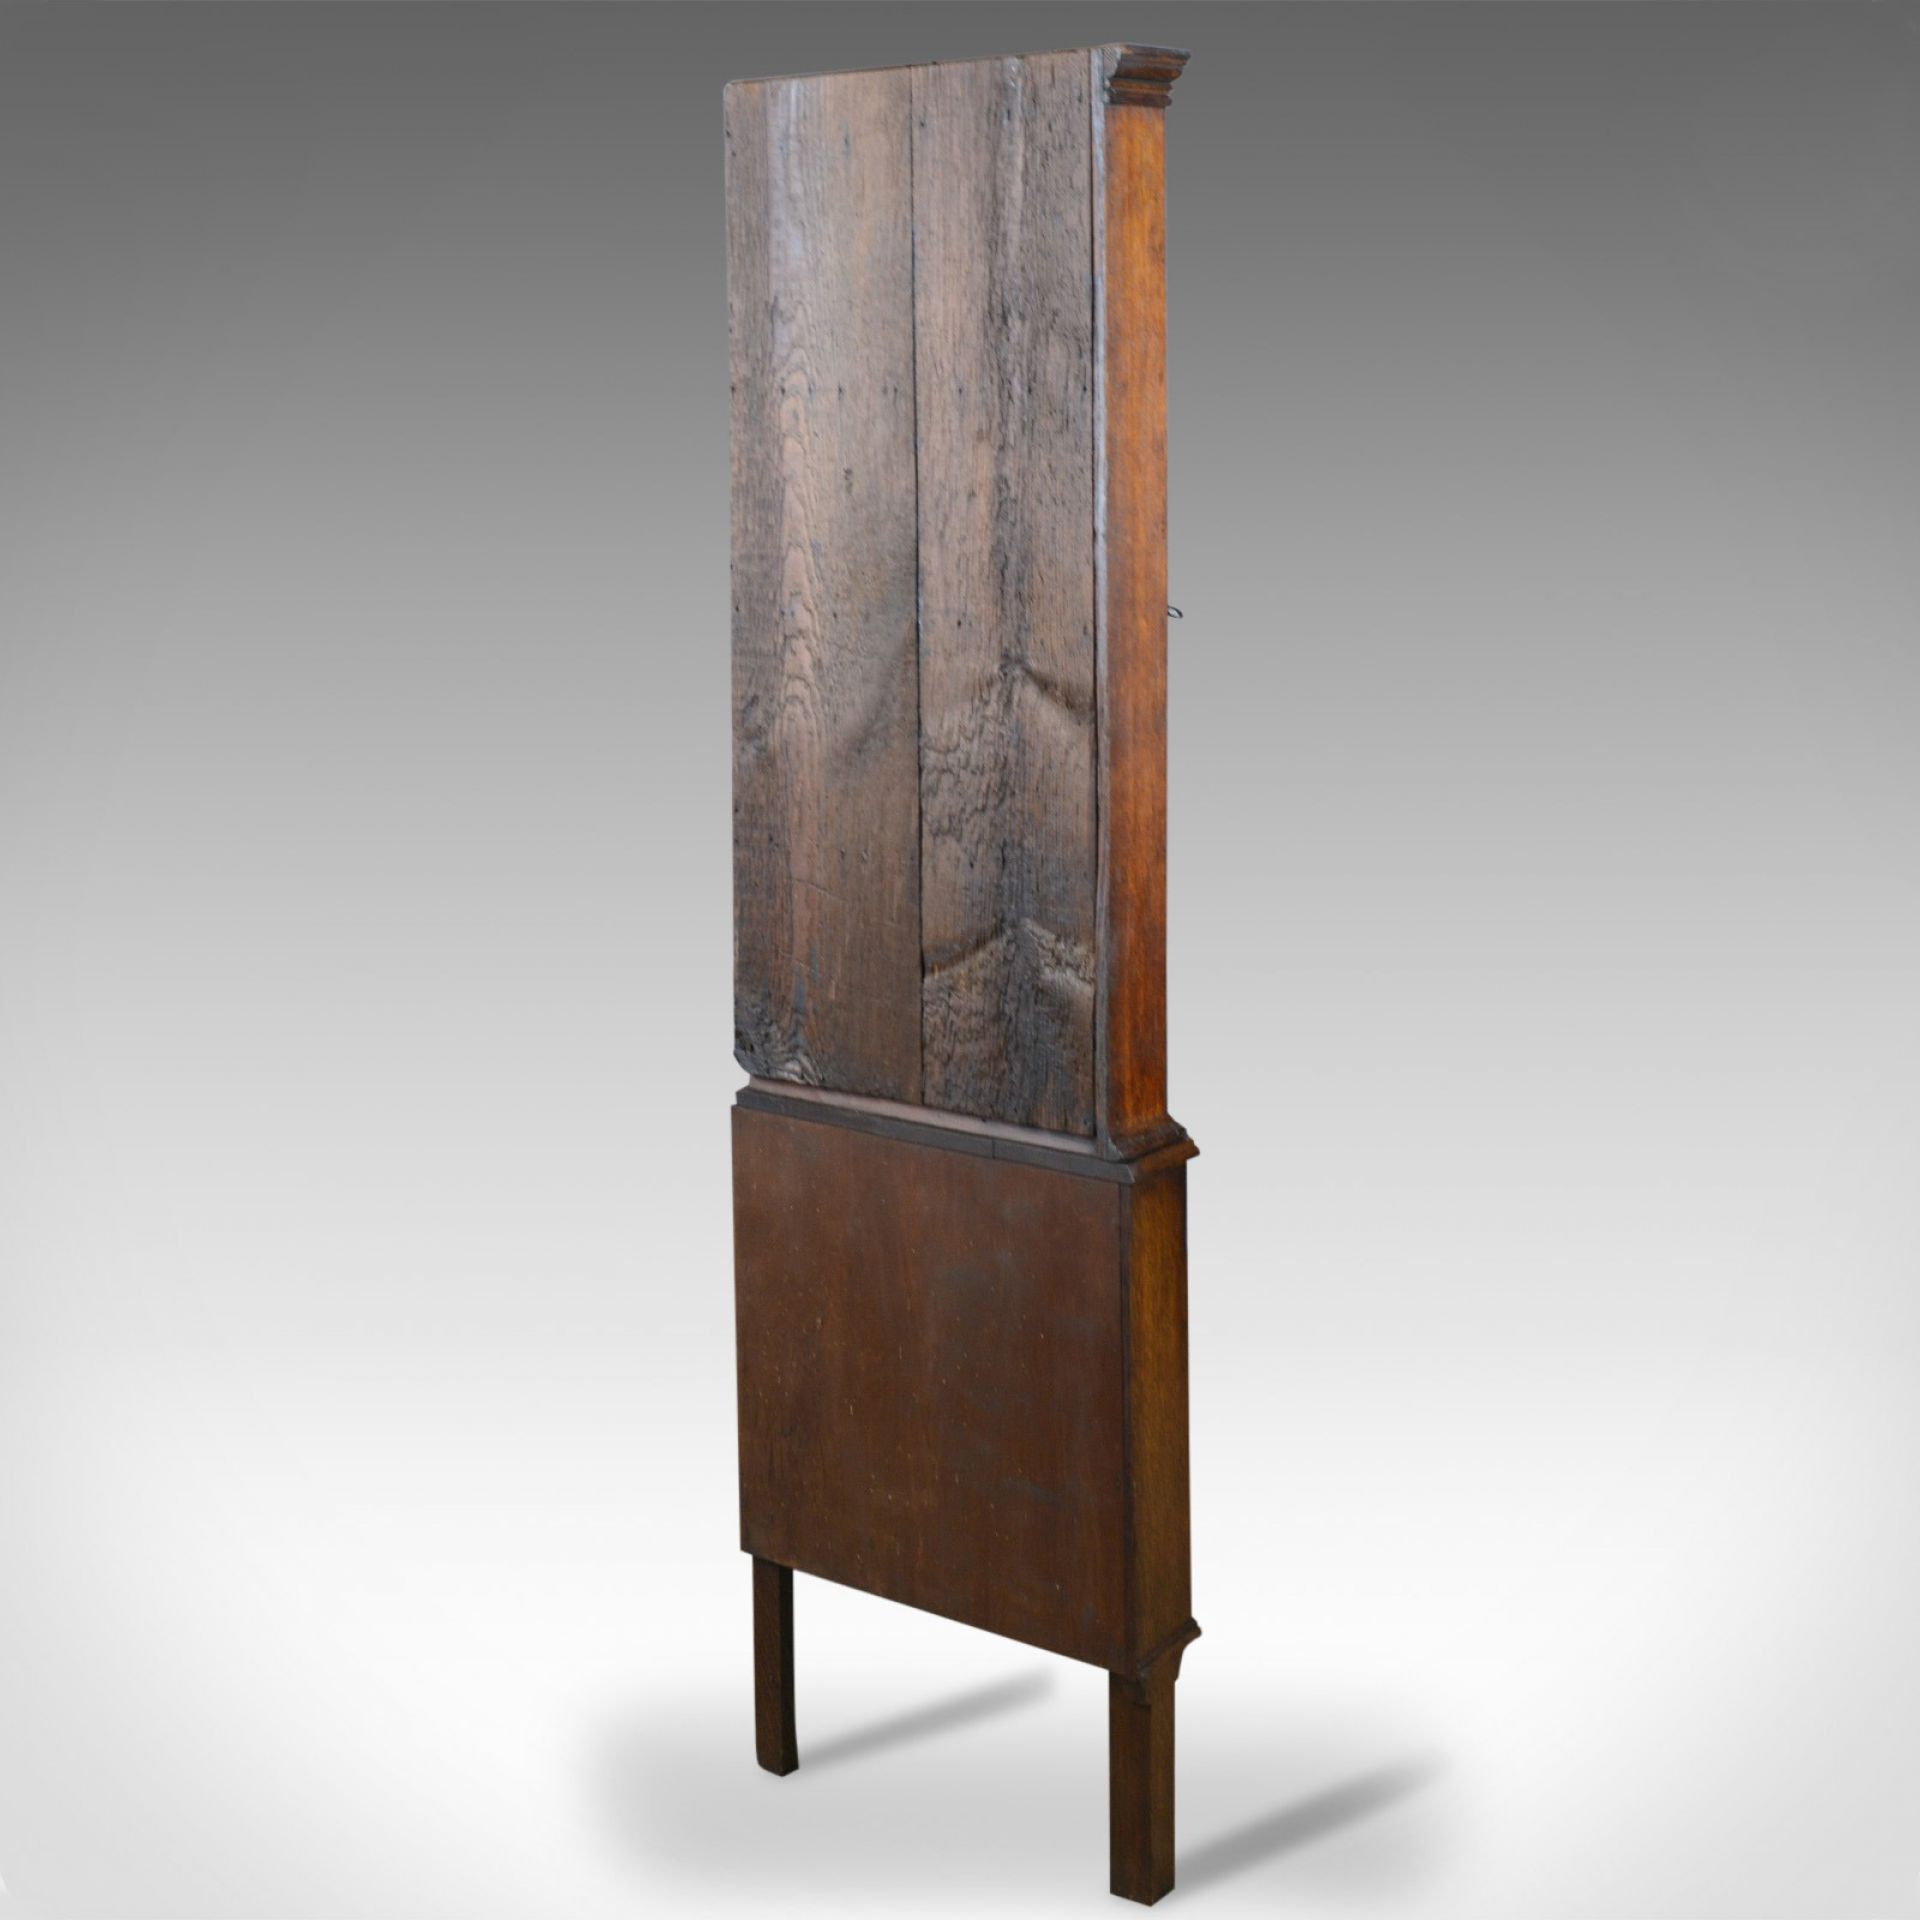 Antique Corner Cabinet on Stand, George III, Oak, Mahogany, c.1770 and Later